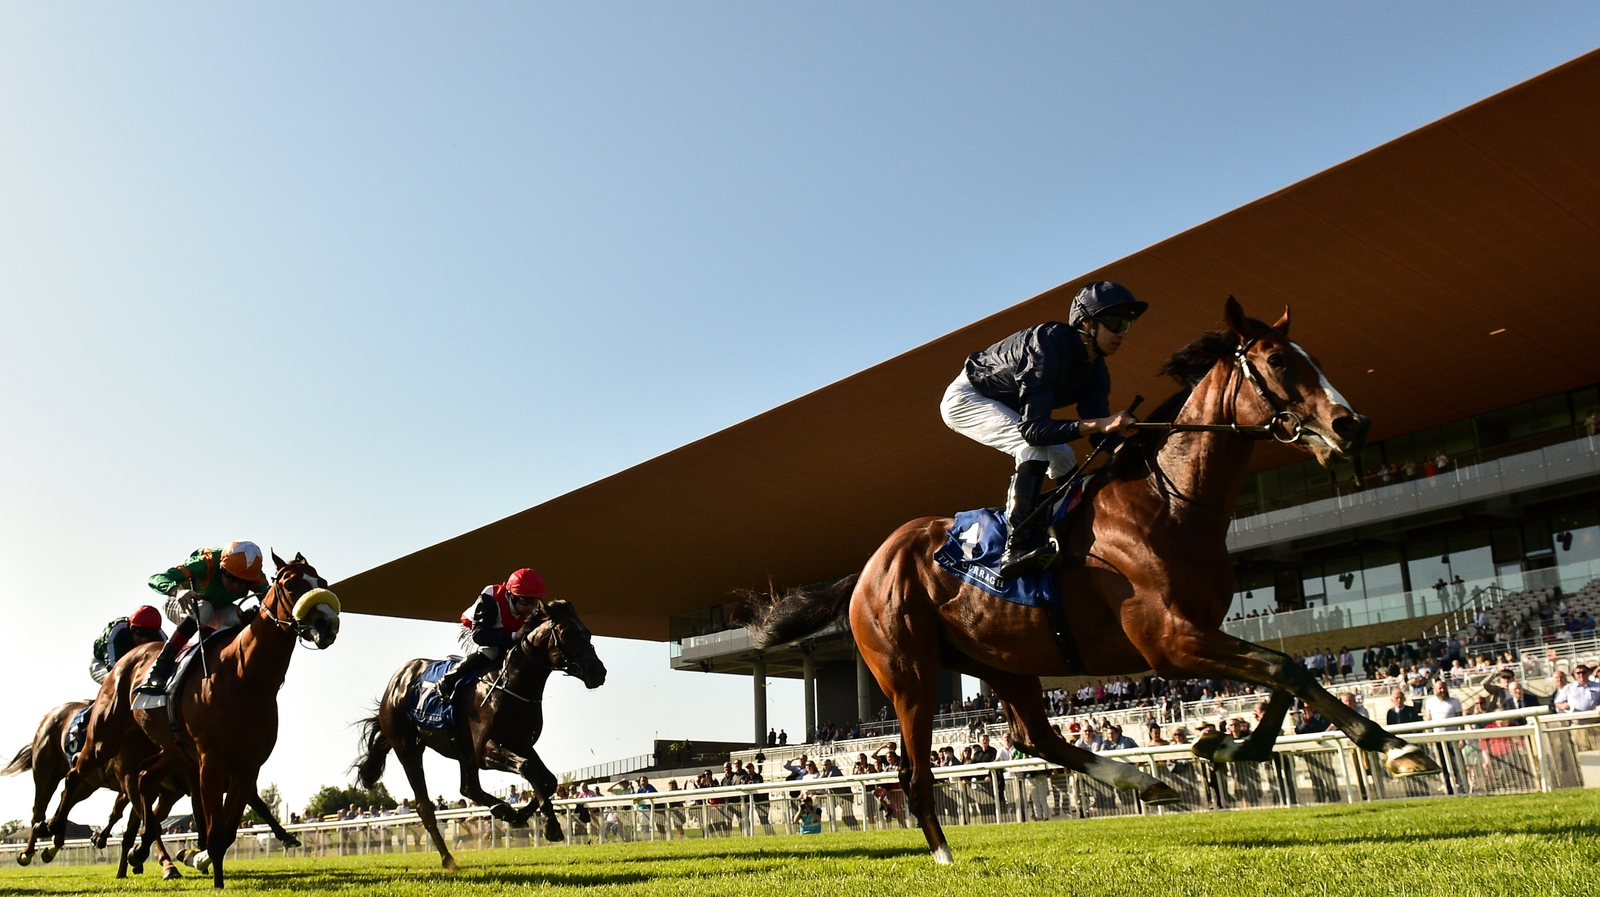 Go Racing in Kildare | Naas, Punchestown & The Curragh